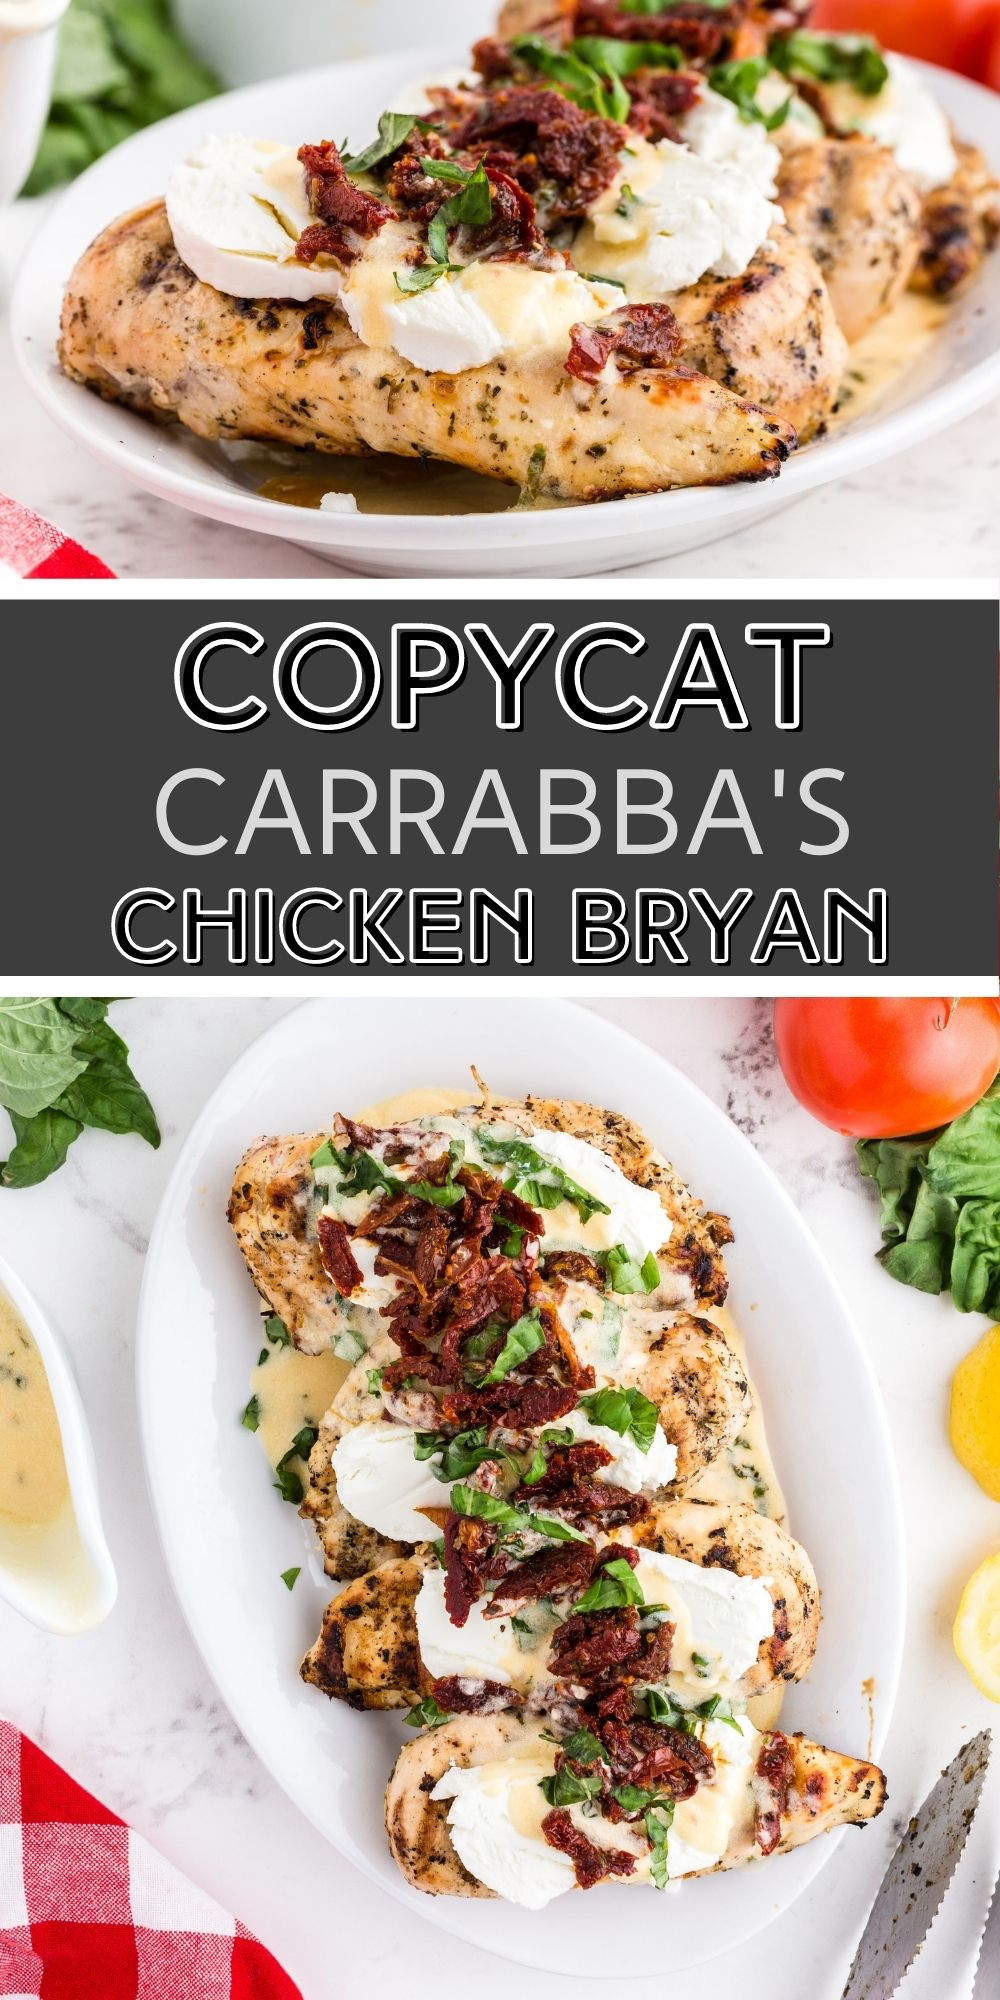 This Copycat Carrabba's Chicken Bryan is a family favorite. The lemon butter sauce with fresh basil and sun-dried tomatoes is truly amazing. via @familyfresh